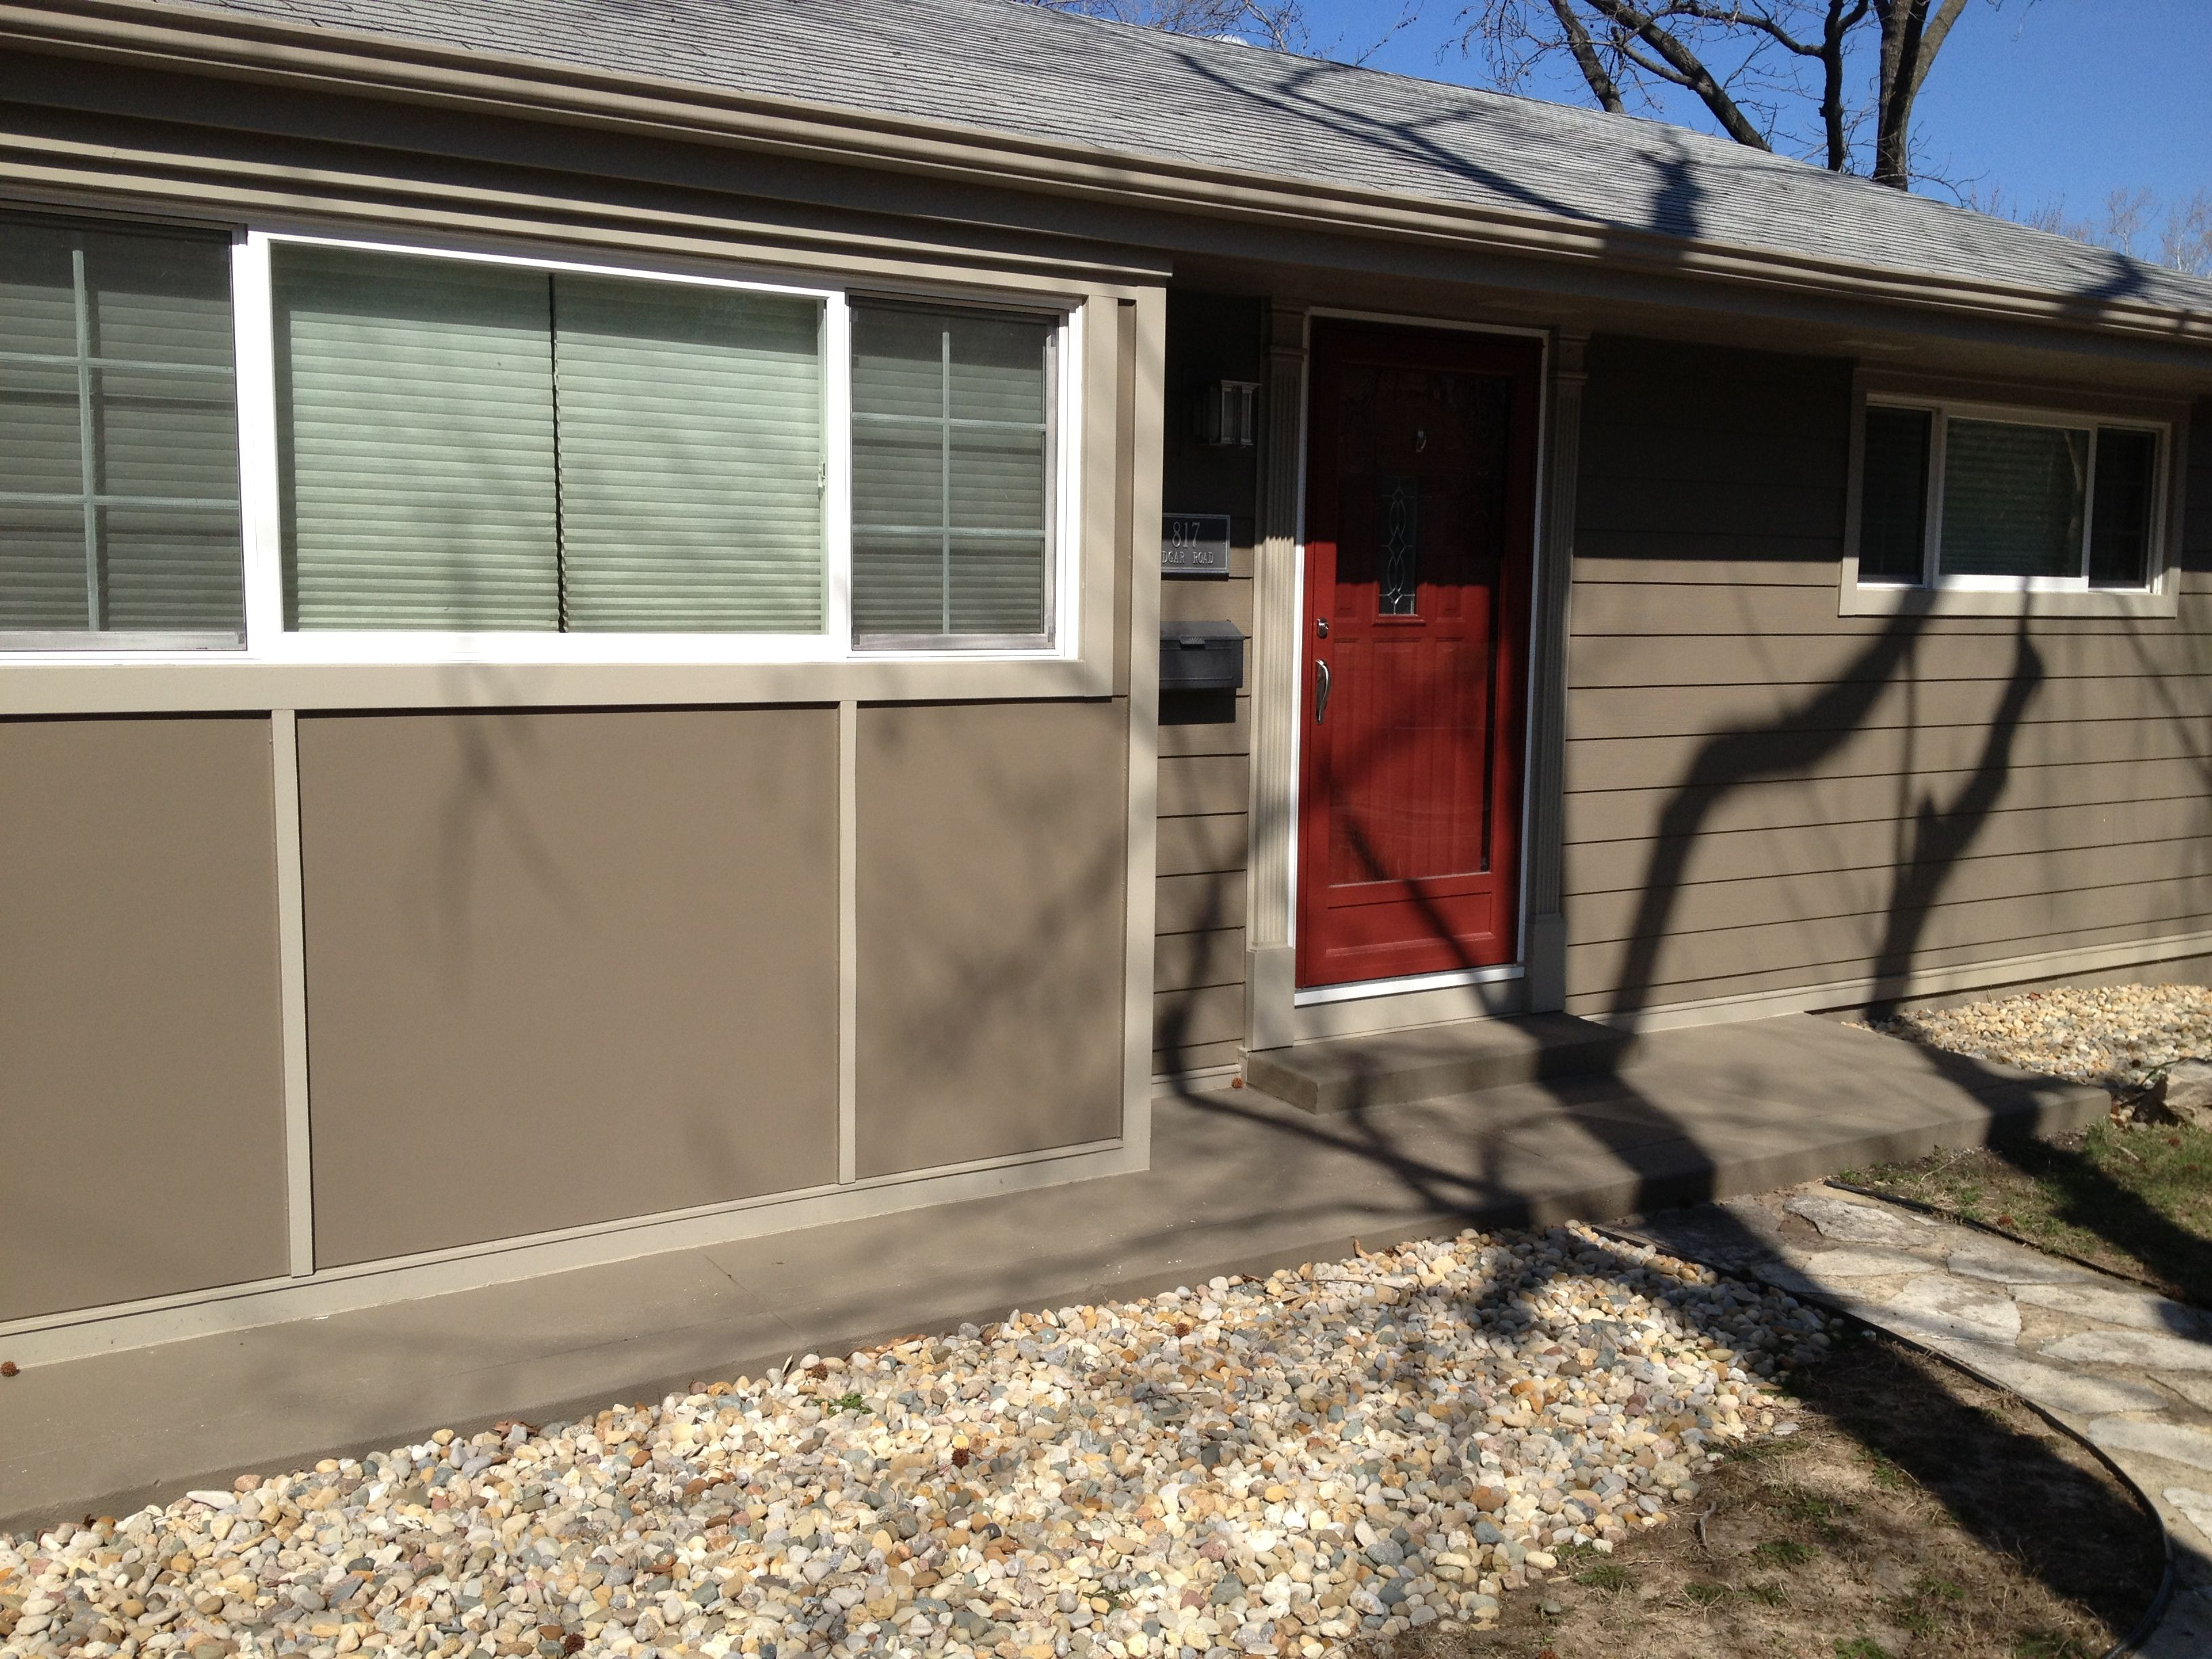 James Hardie 8 1 4 Lap Siding In Timber Bark Also Trim